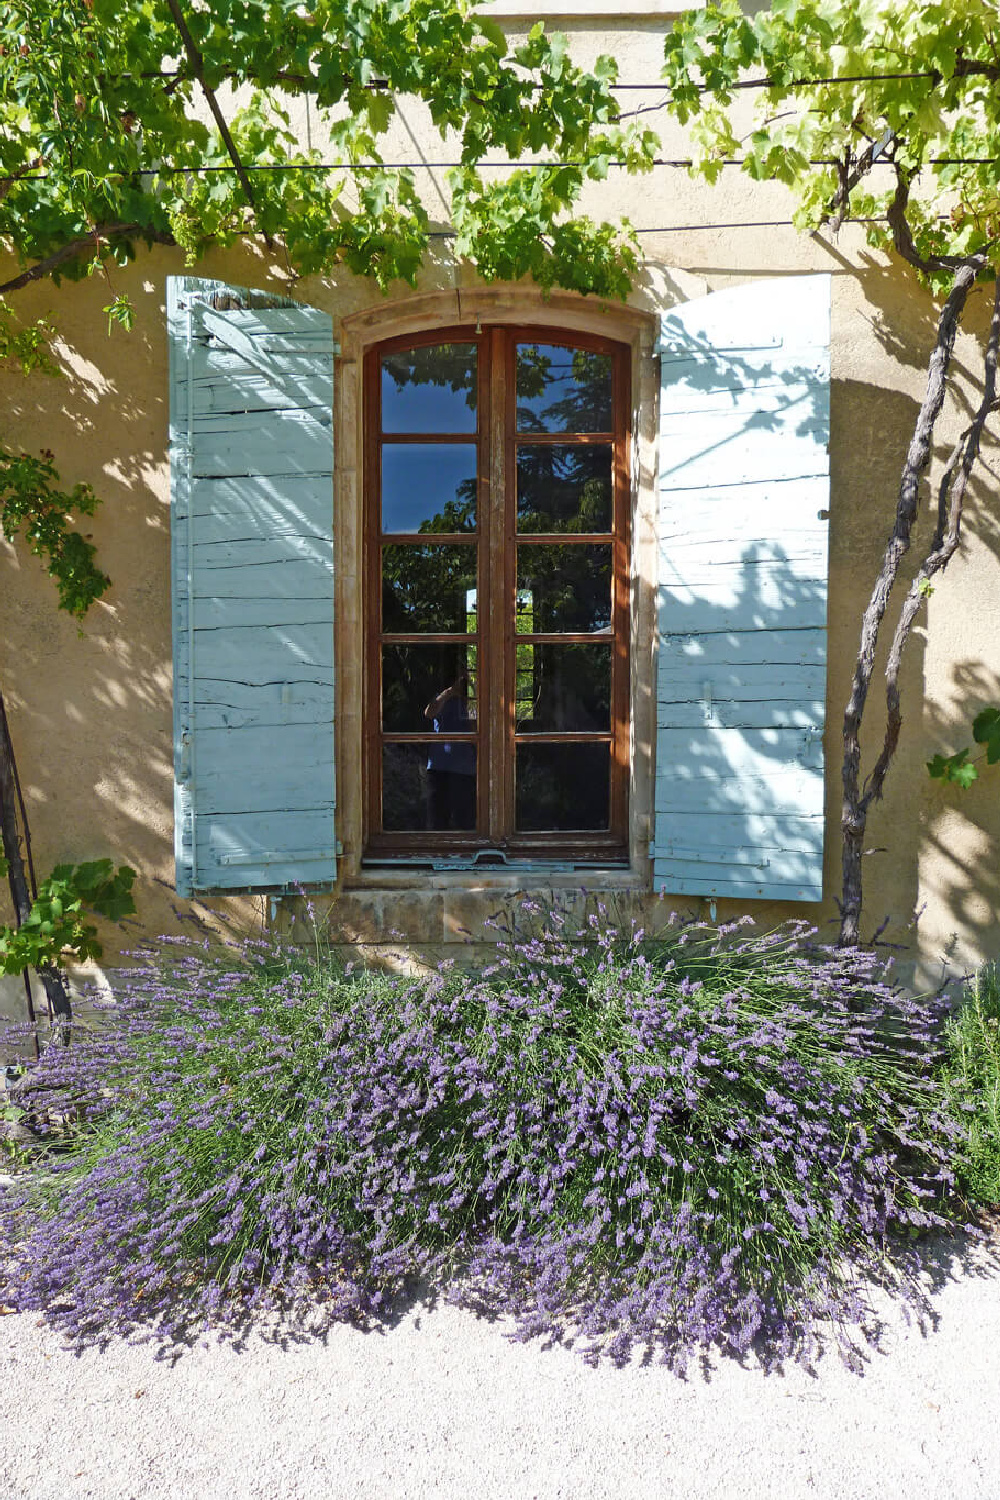 French farmhouse exterior with beautiful green shutters. Come score ideas for a Timeless and Tranquil European Country Inspired Look. #europeancountry #interiordesign #frenchcountry